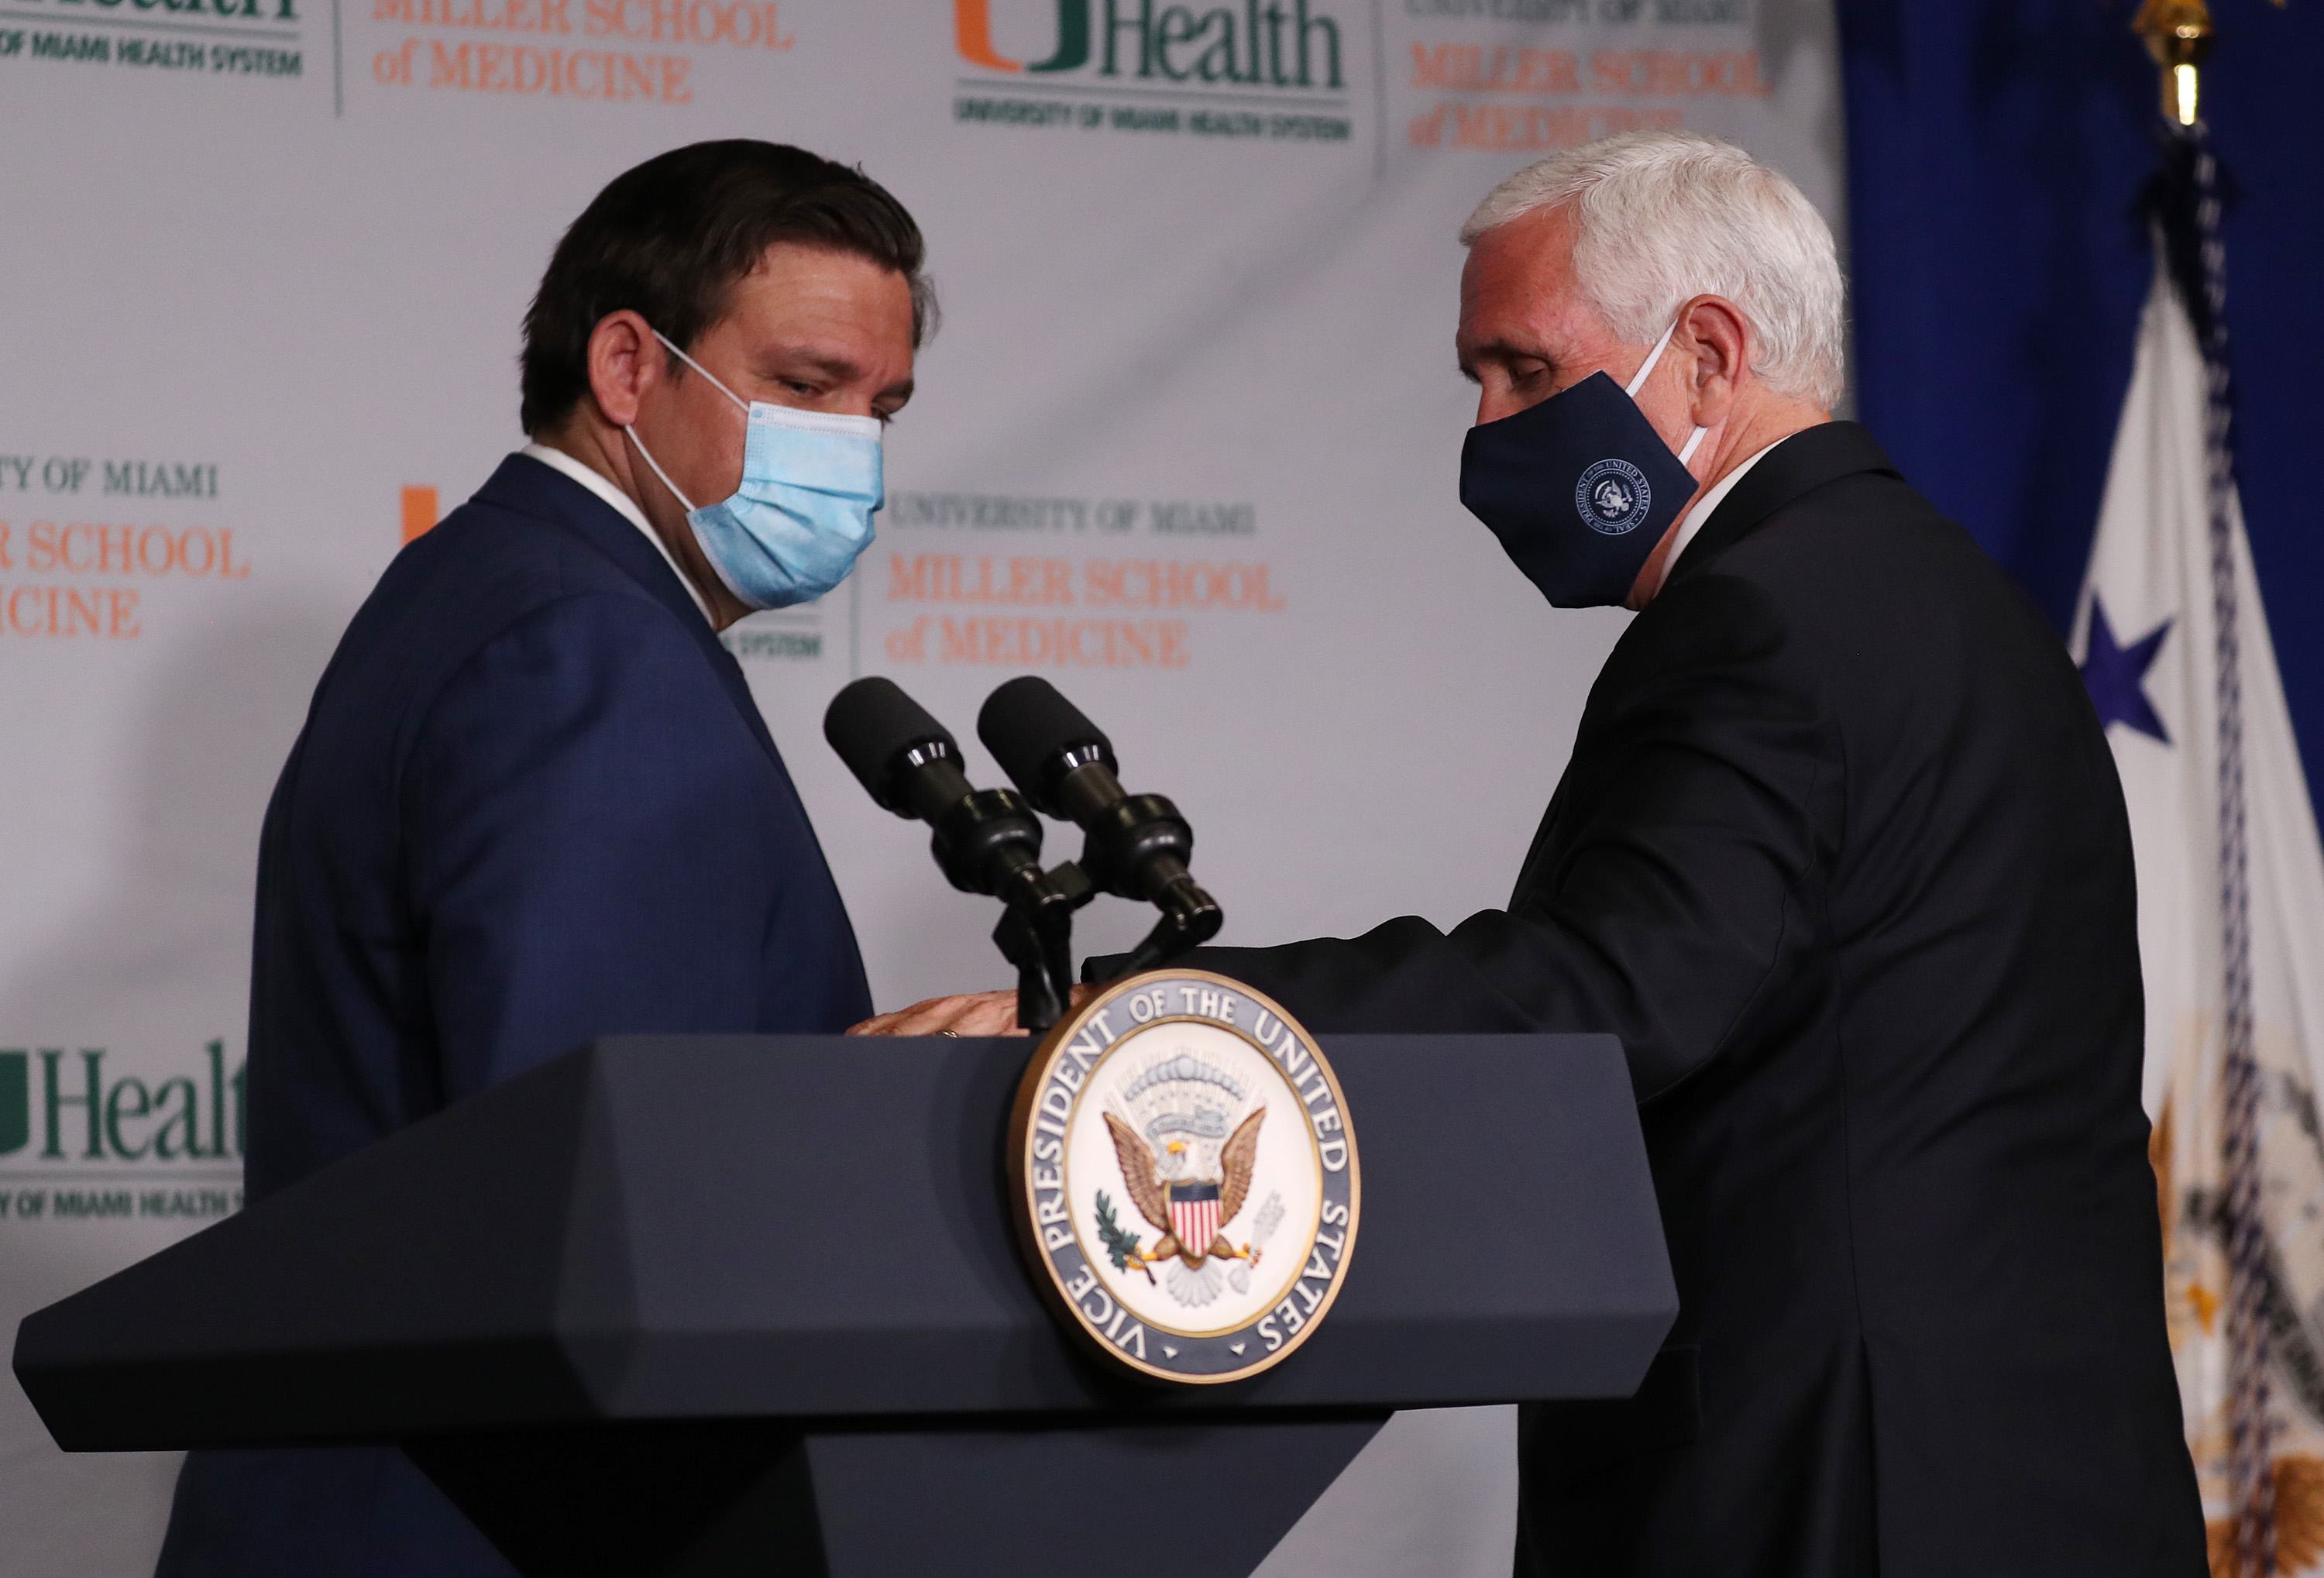 Vice President Mike Pence and Florida Gov. Ron DeSantis leave after participating in a press conference at the the University of Miami Miller School of Medicine on July 27, 2020 in Miami, Florida. (Joe Raedle/Getty Images)